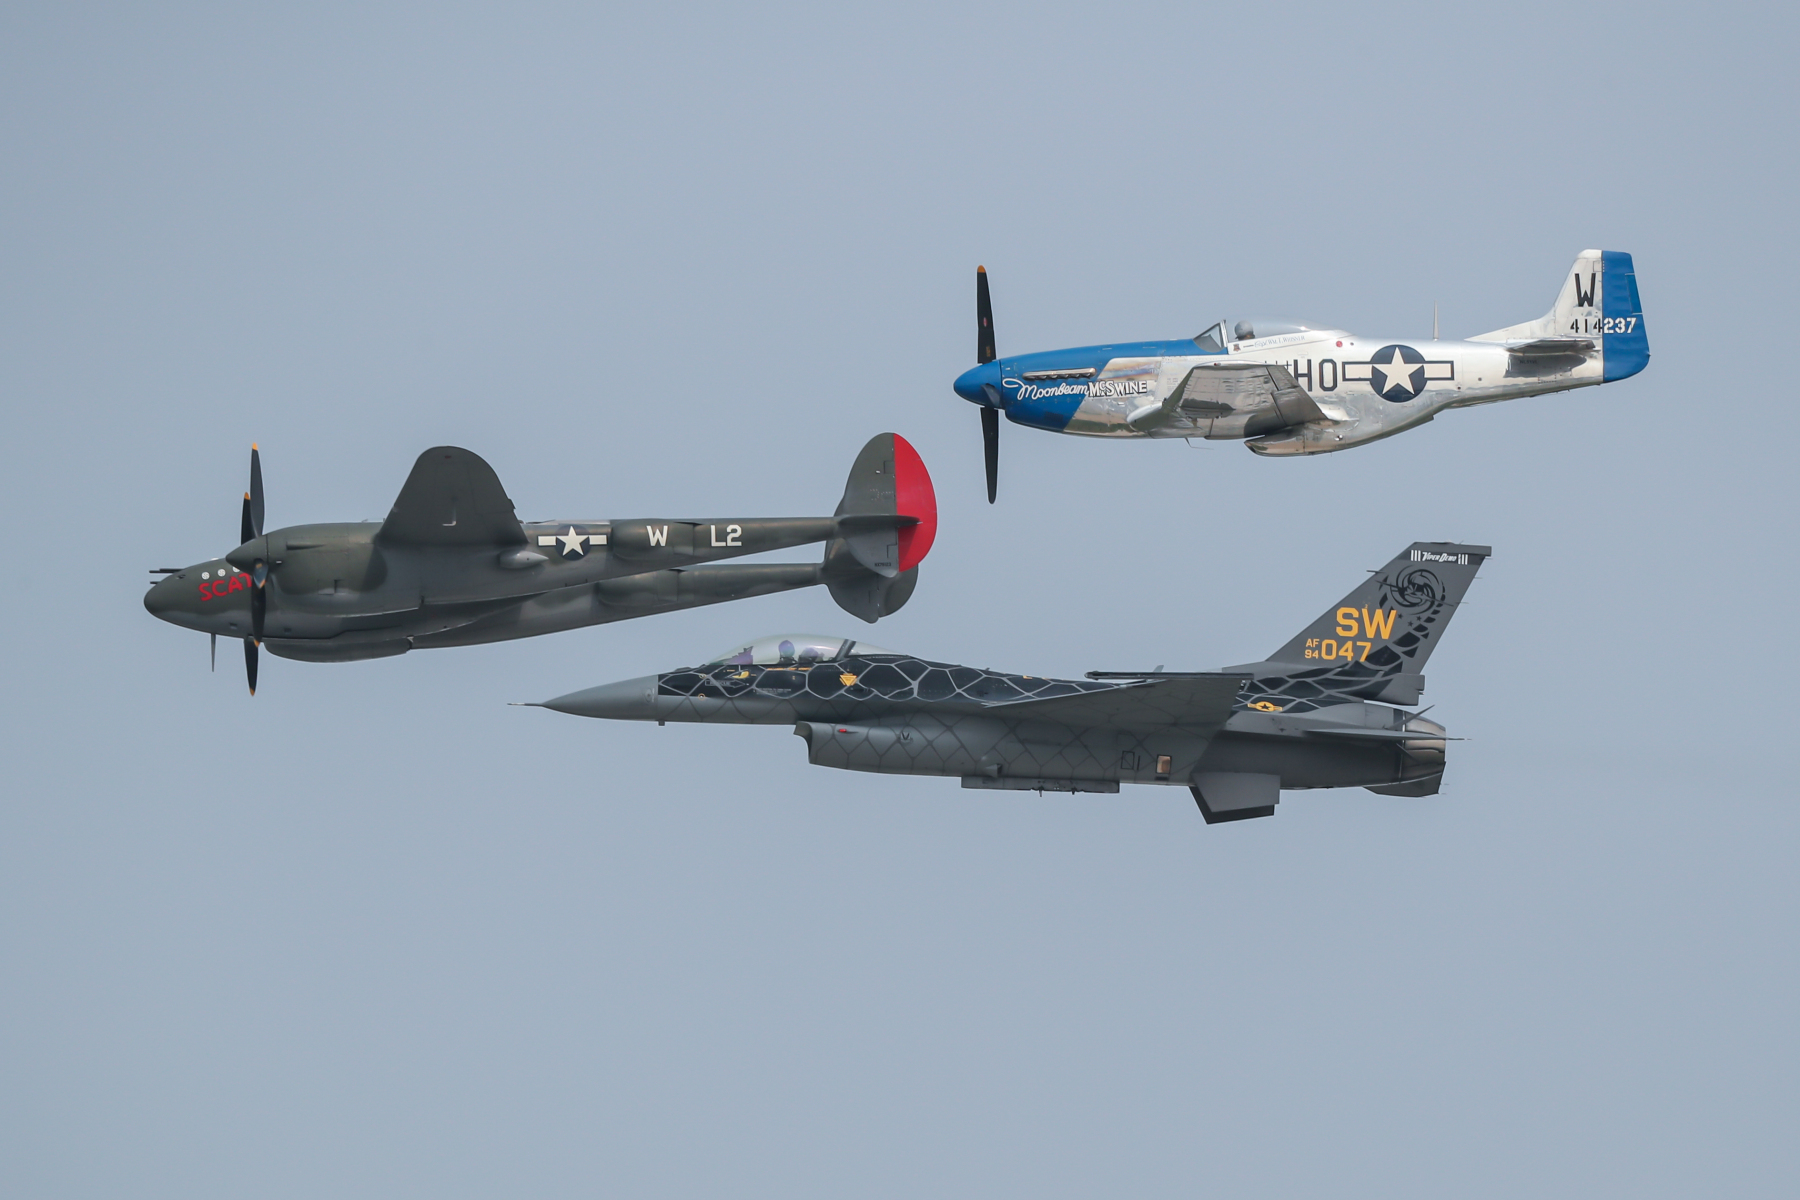 Lockheed P-38 Lightning, North American P-51 Mustang, and General Dynamics F-17 Fighting Falcon by Art Eichmann